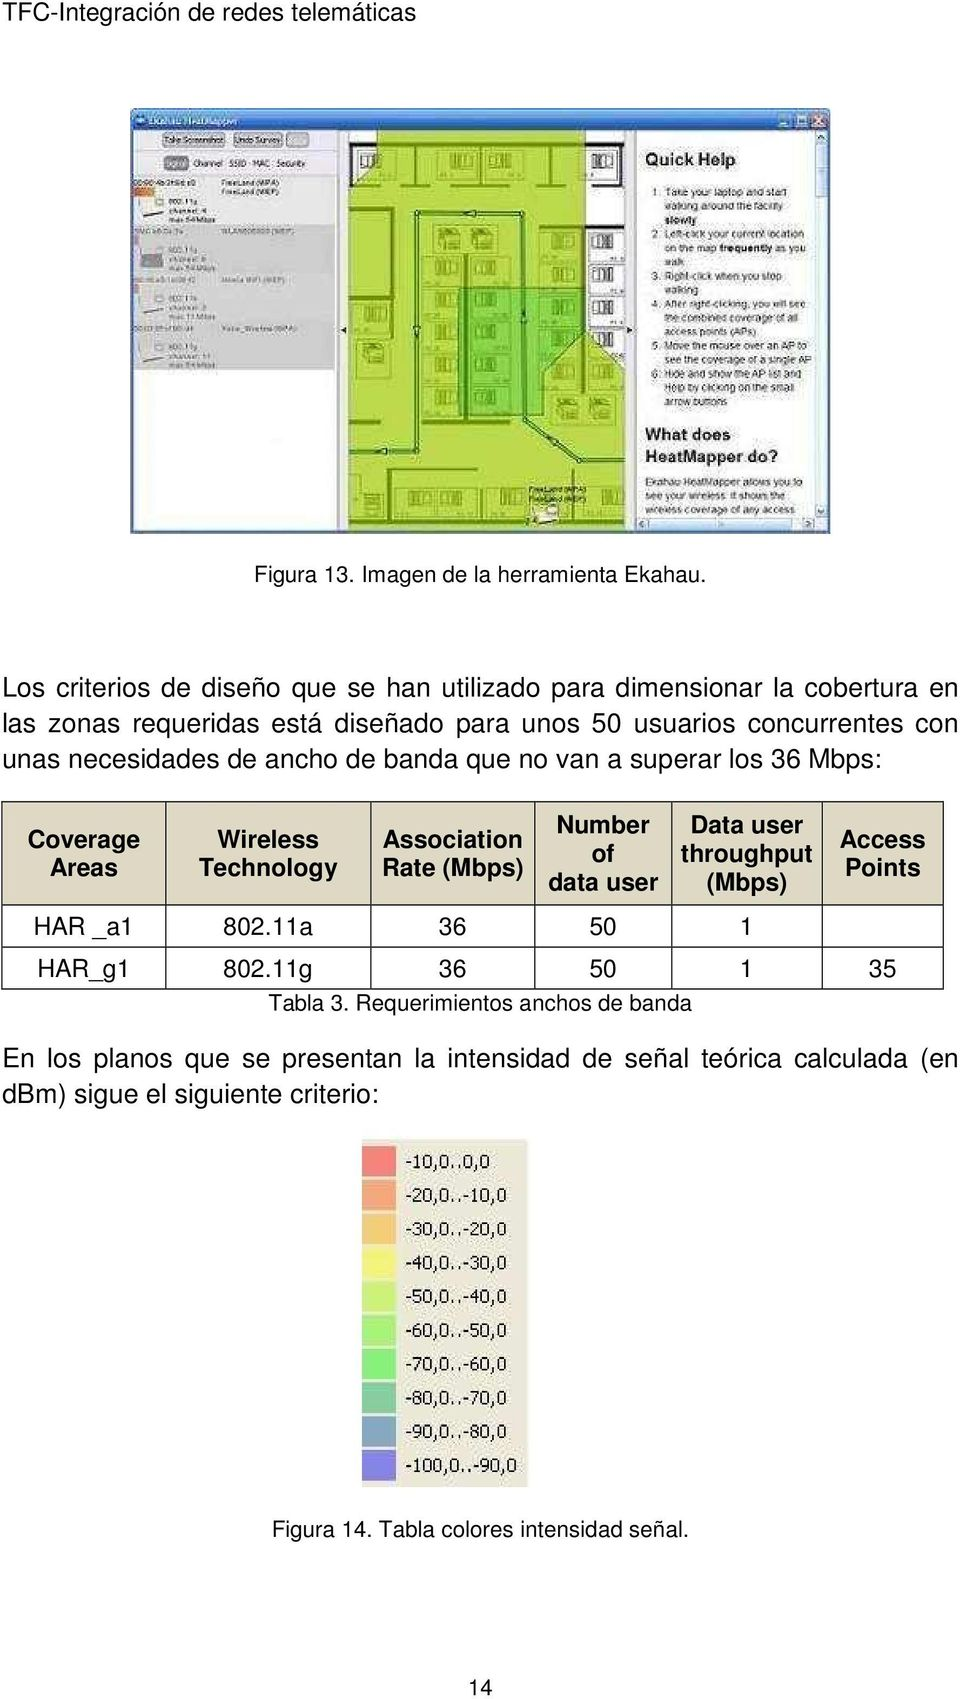 necesidades de ancho de banda que no van a superar los 36 Mbps: Coverage Areas Wireless Technology Association Rate (Mbps) Number of data user Data user